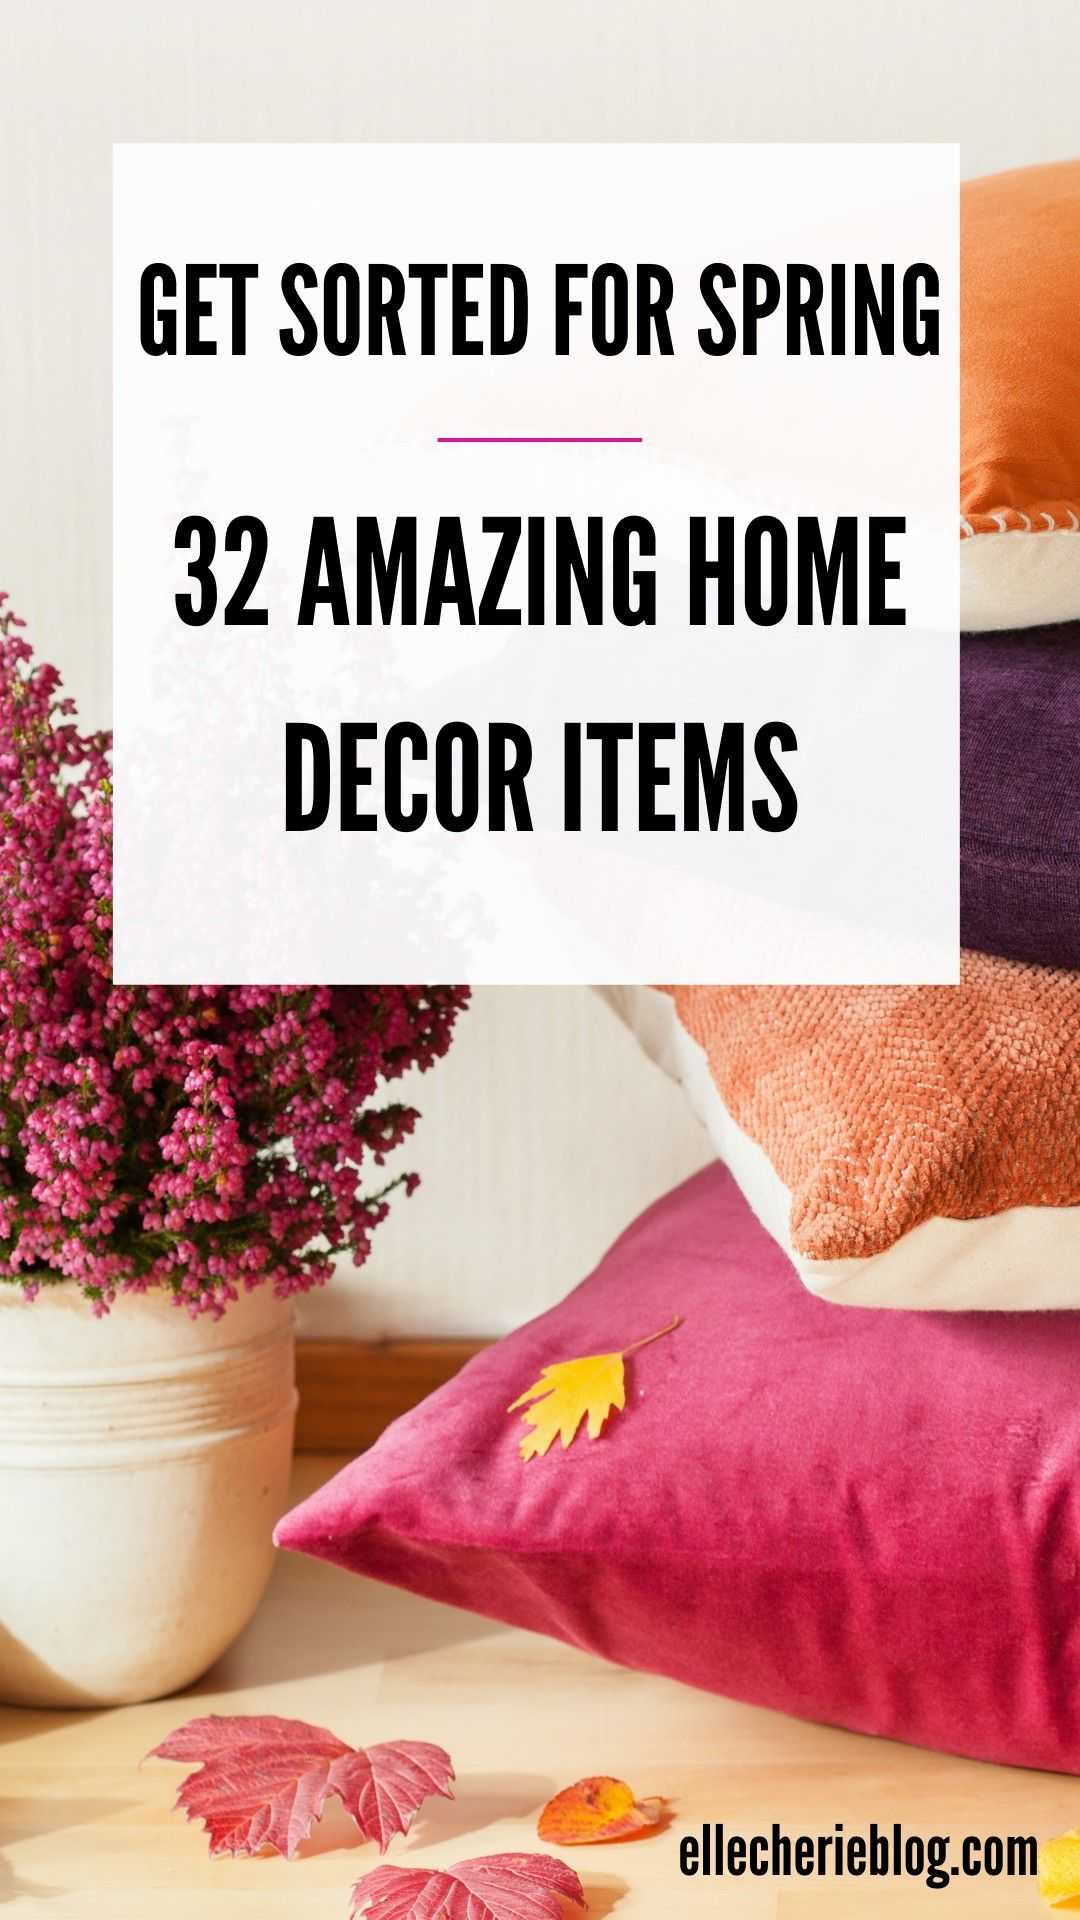 Get ready for spring with some new home decor. These 32 ideas will have your home looking fresh and updated for spring. See our decor ideas to get inspired and give your home a mini makeover. #homedecor #decor #decorideas #decordiy